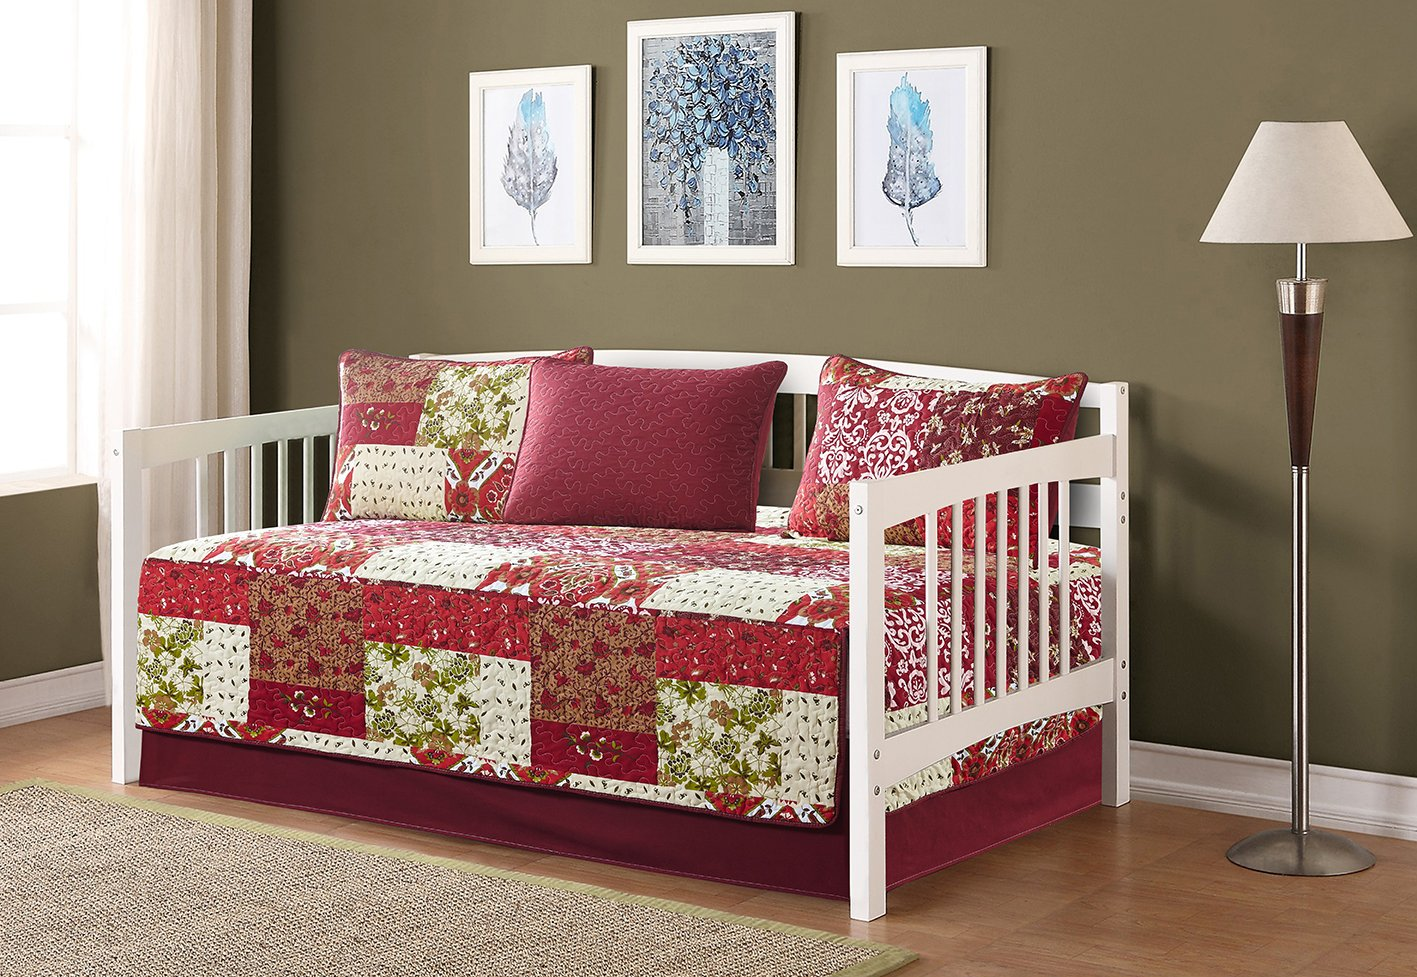 Mk Collection 5pc Day Bed Oversize Quilted Cover Set Patchwork Floral Red Burgundy Green Beige Brown White New by MK Home (Image #1)